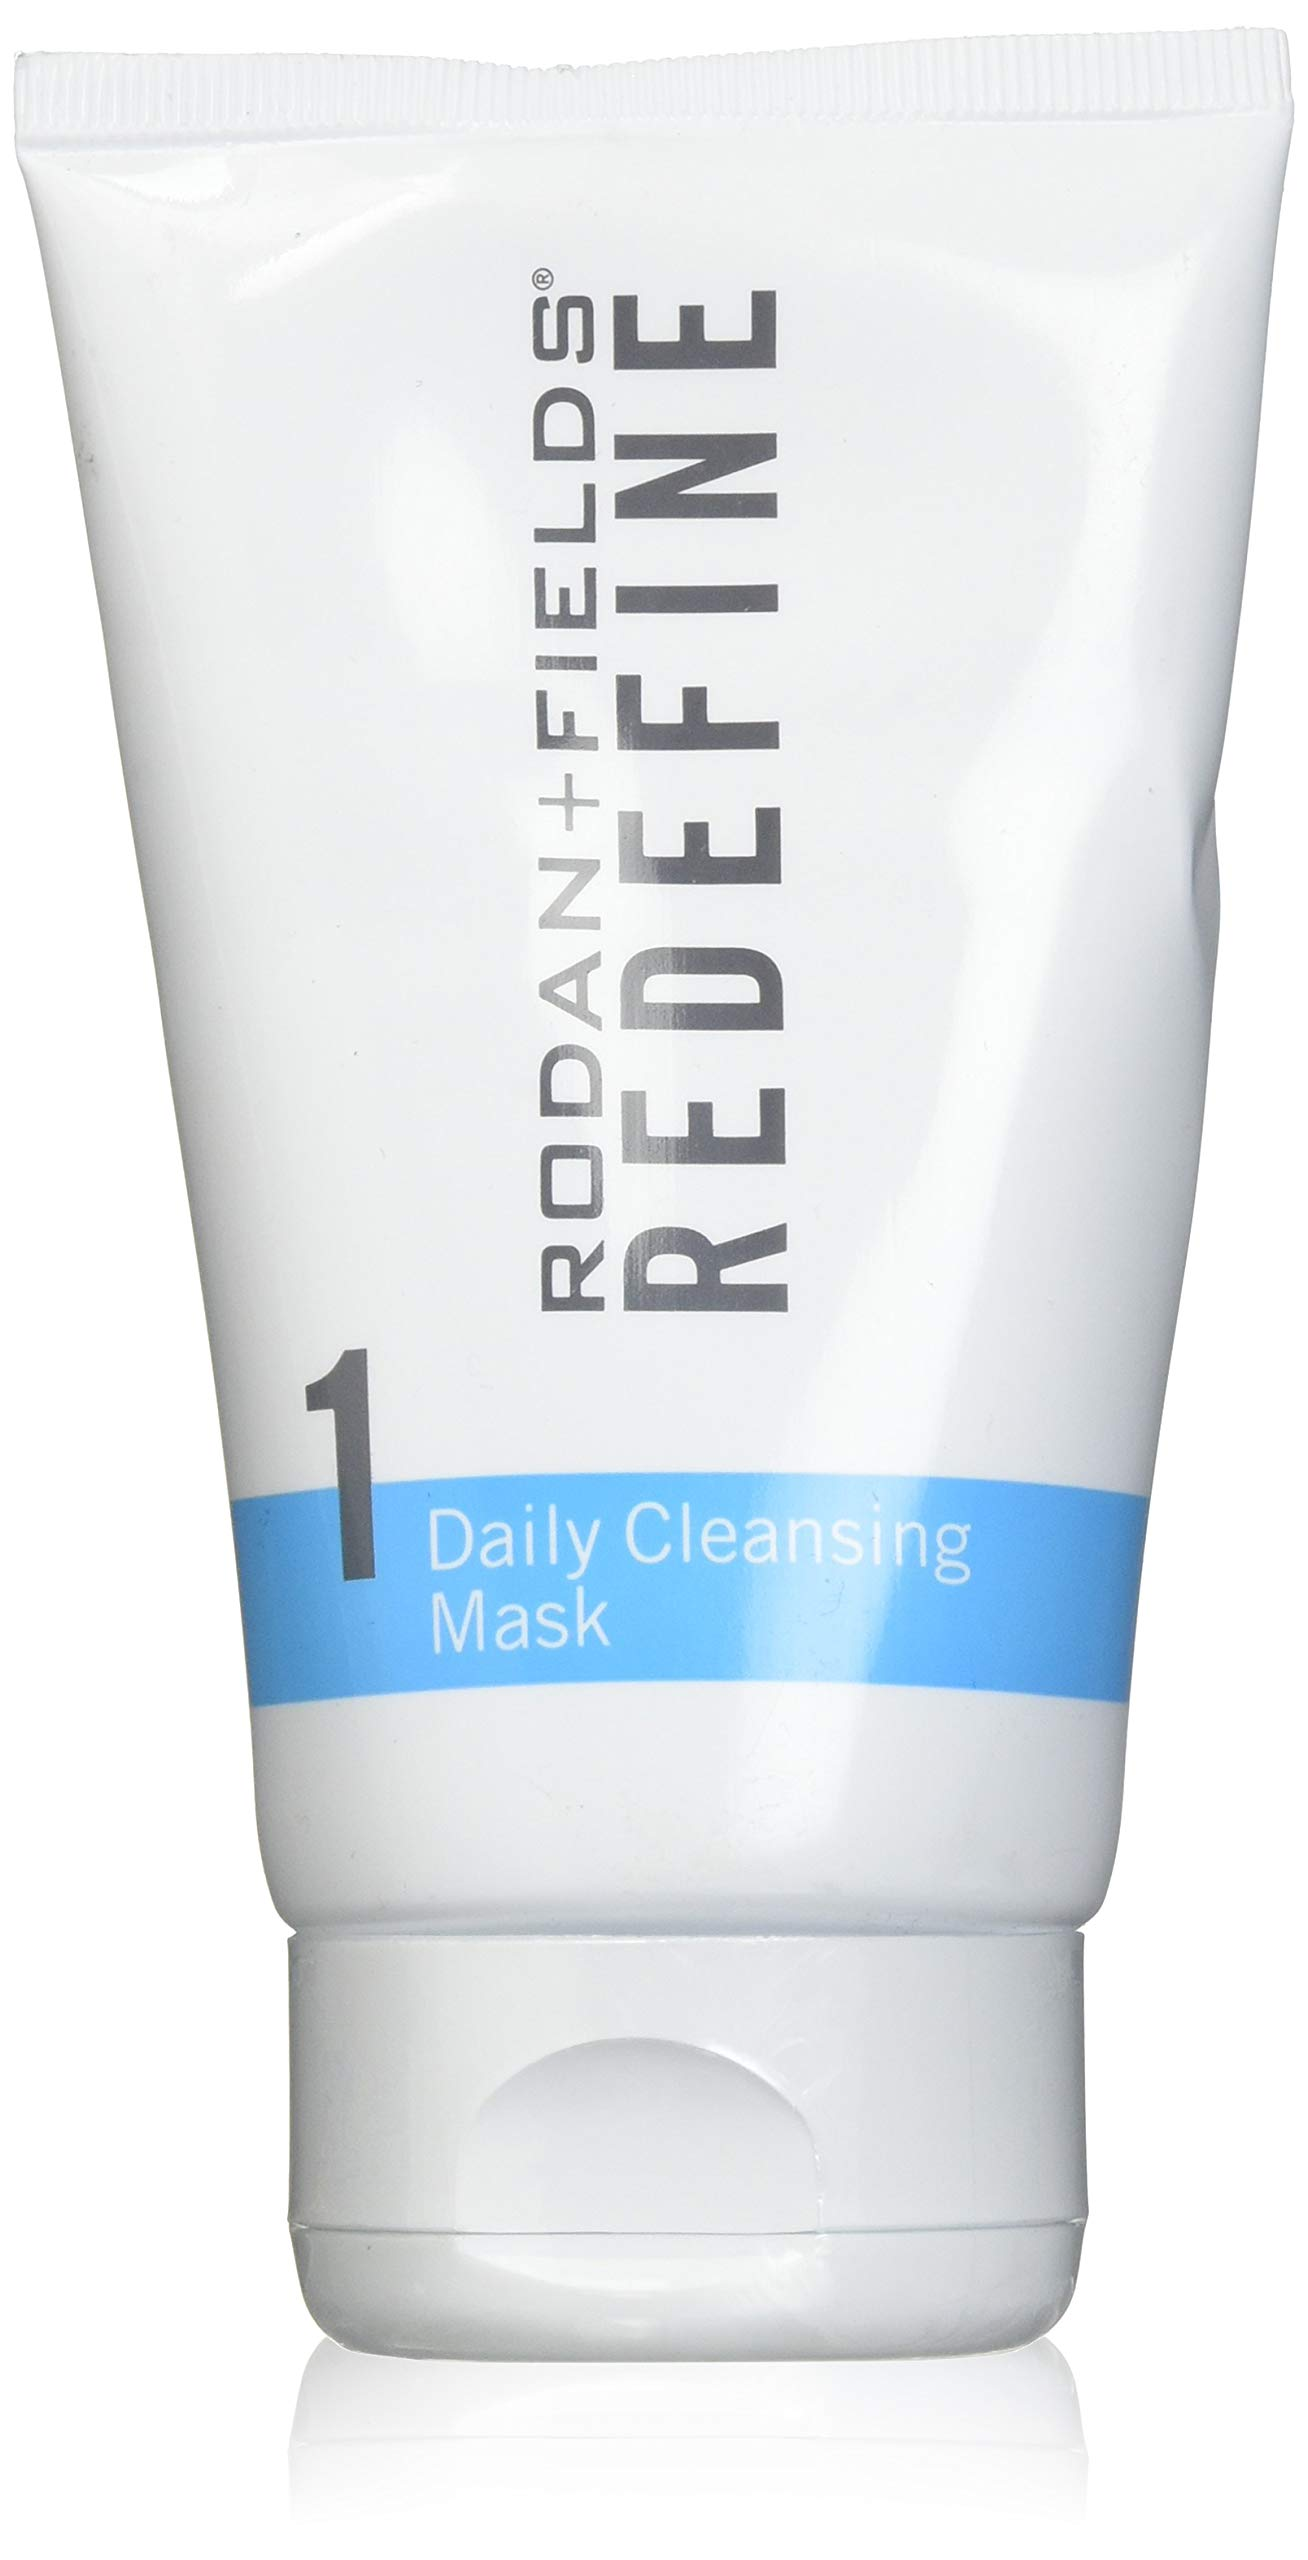 Rodan and Fields Redefine Daily Cleaning Mask by Rodan and Fields